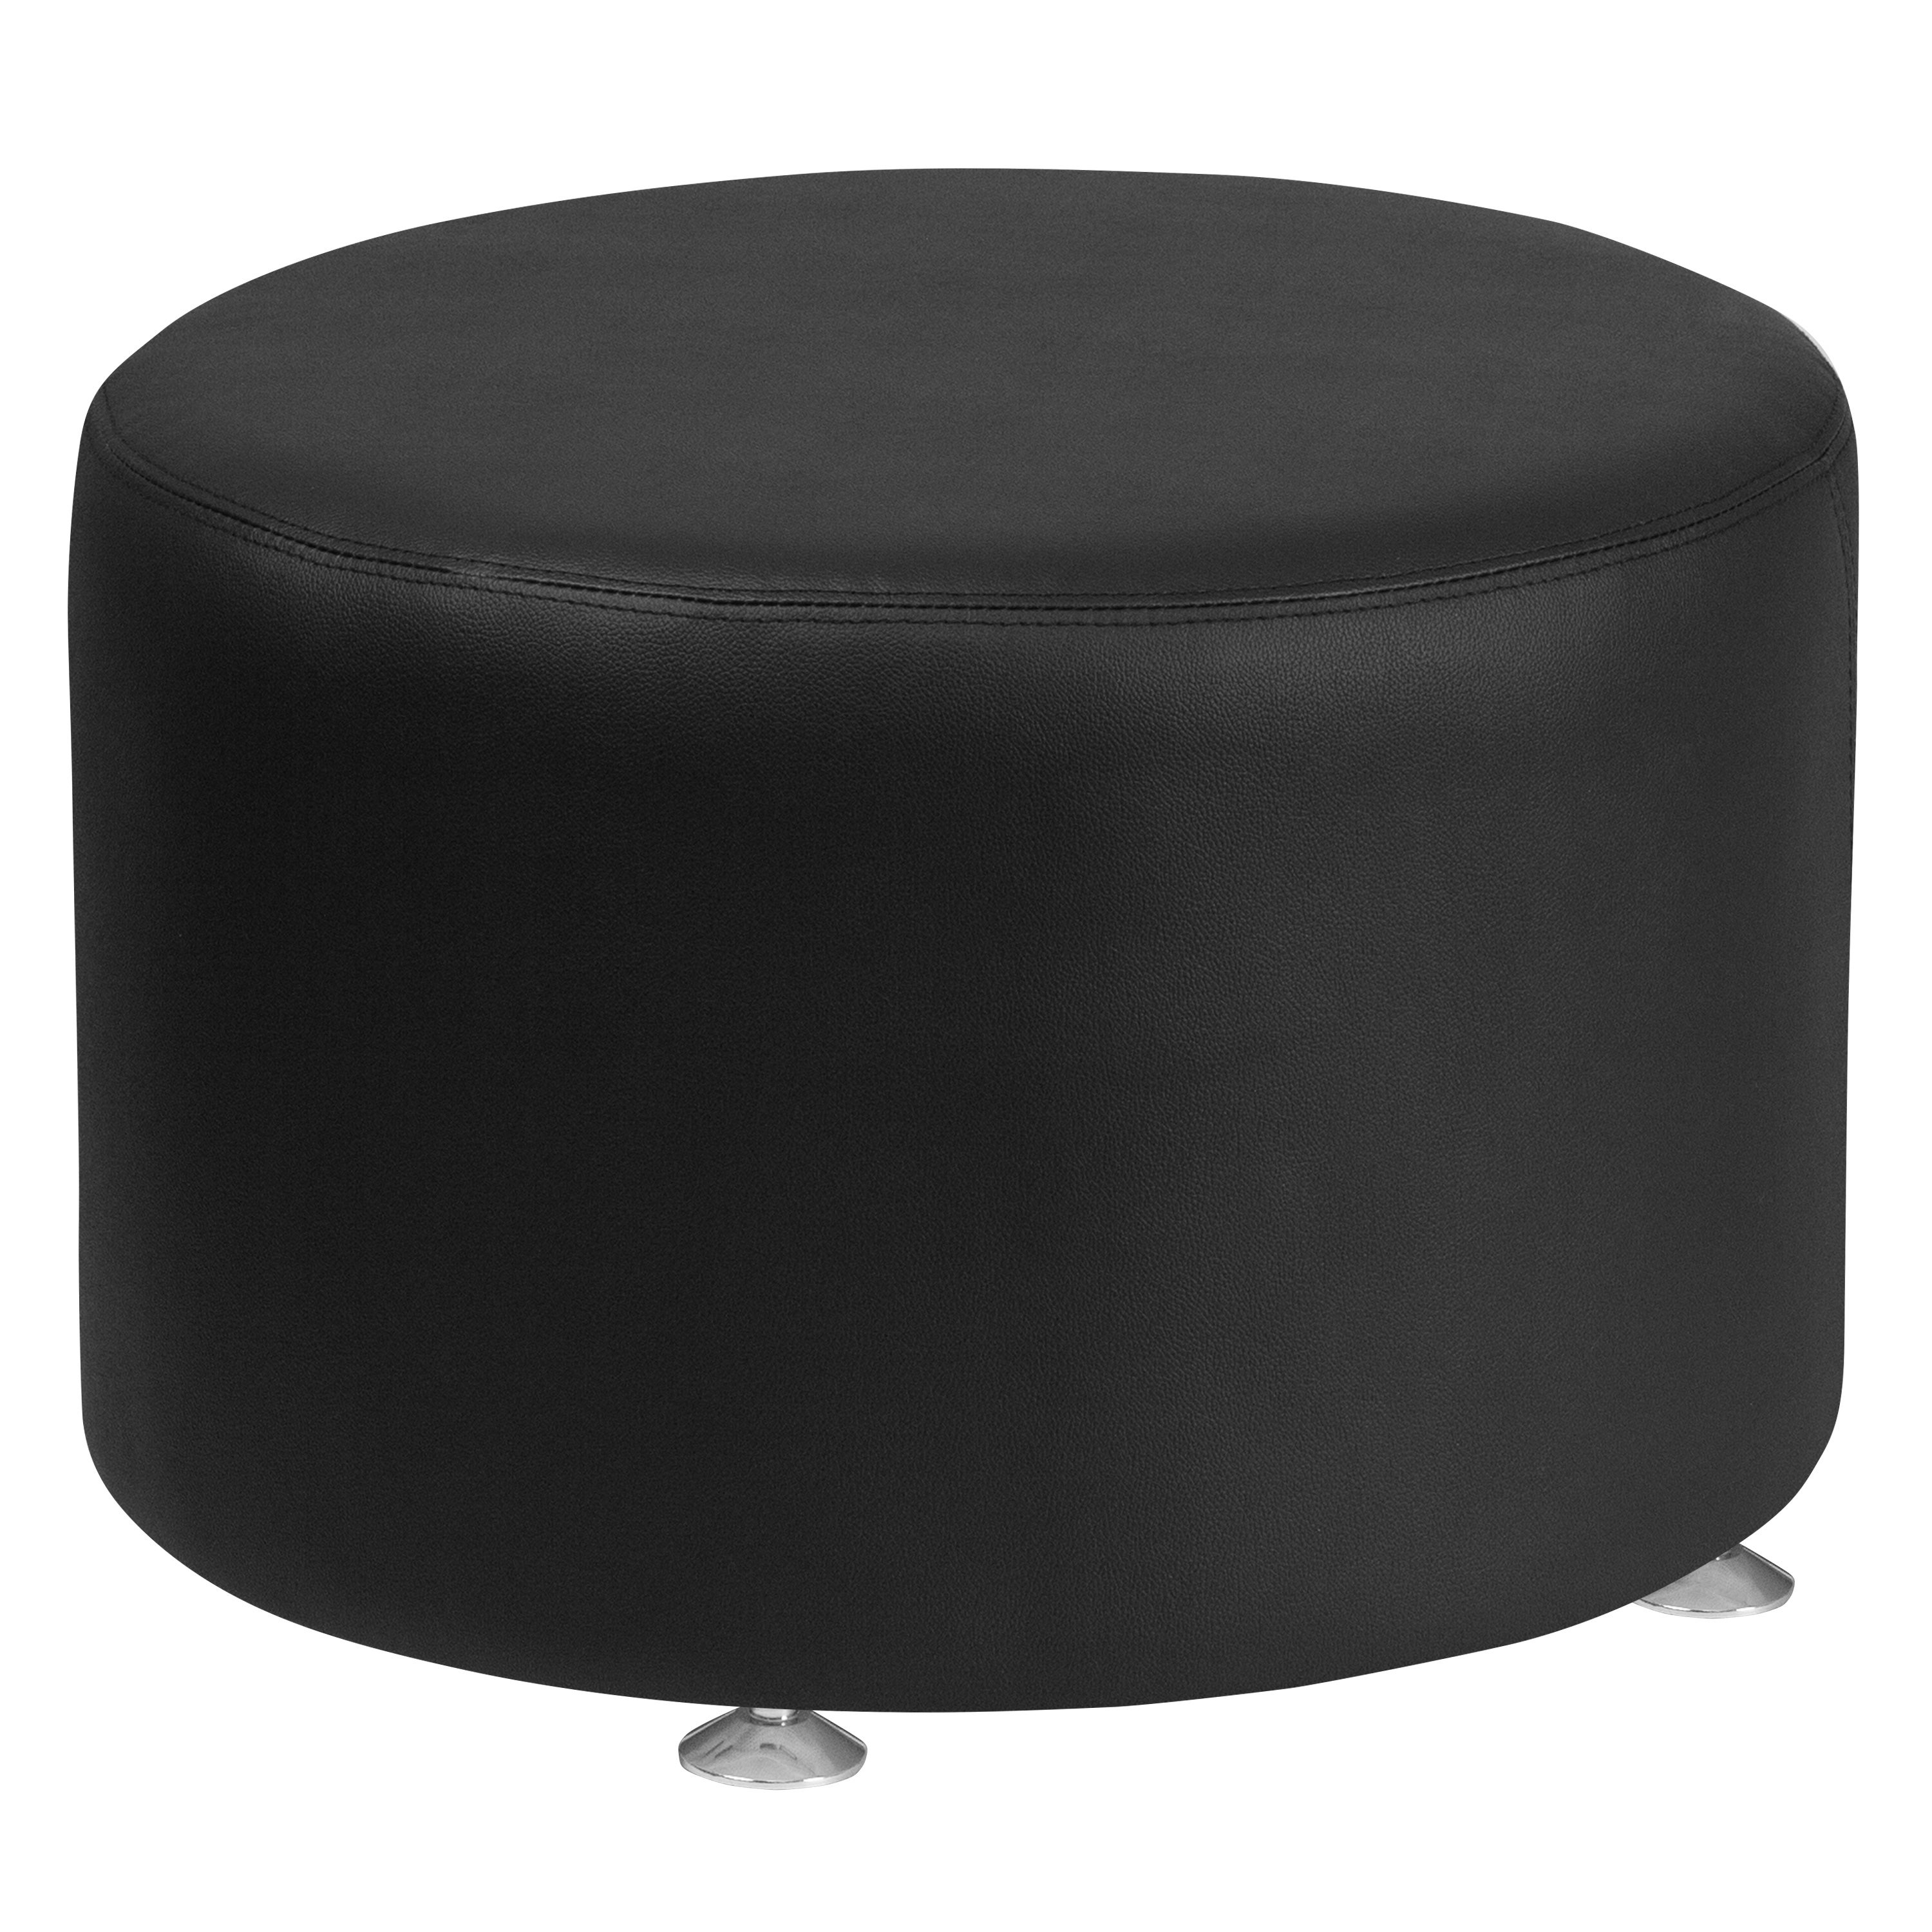 Admirable Leather 24 Round Ottoman Gmtry Best Dining Table And Chair Ideas Images Gmtryco